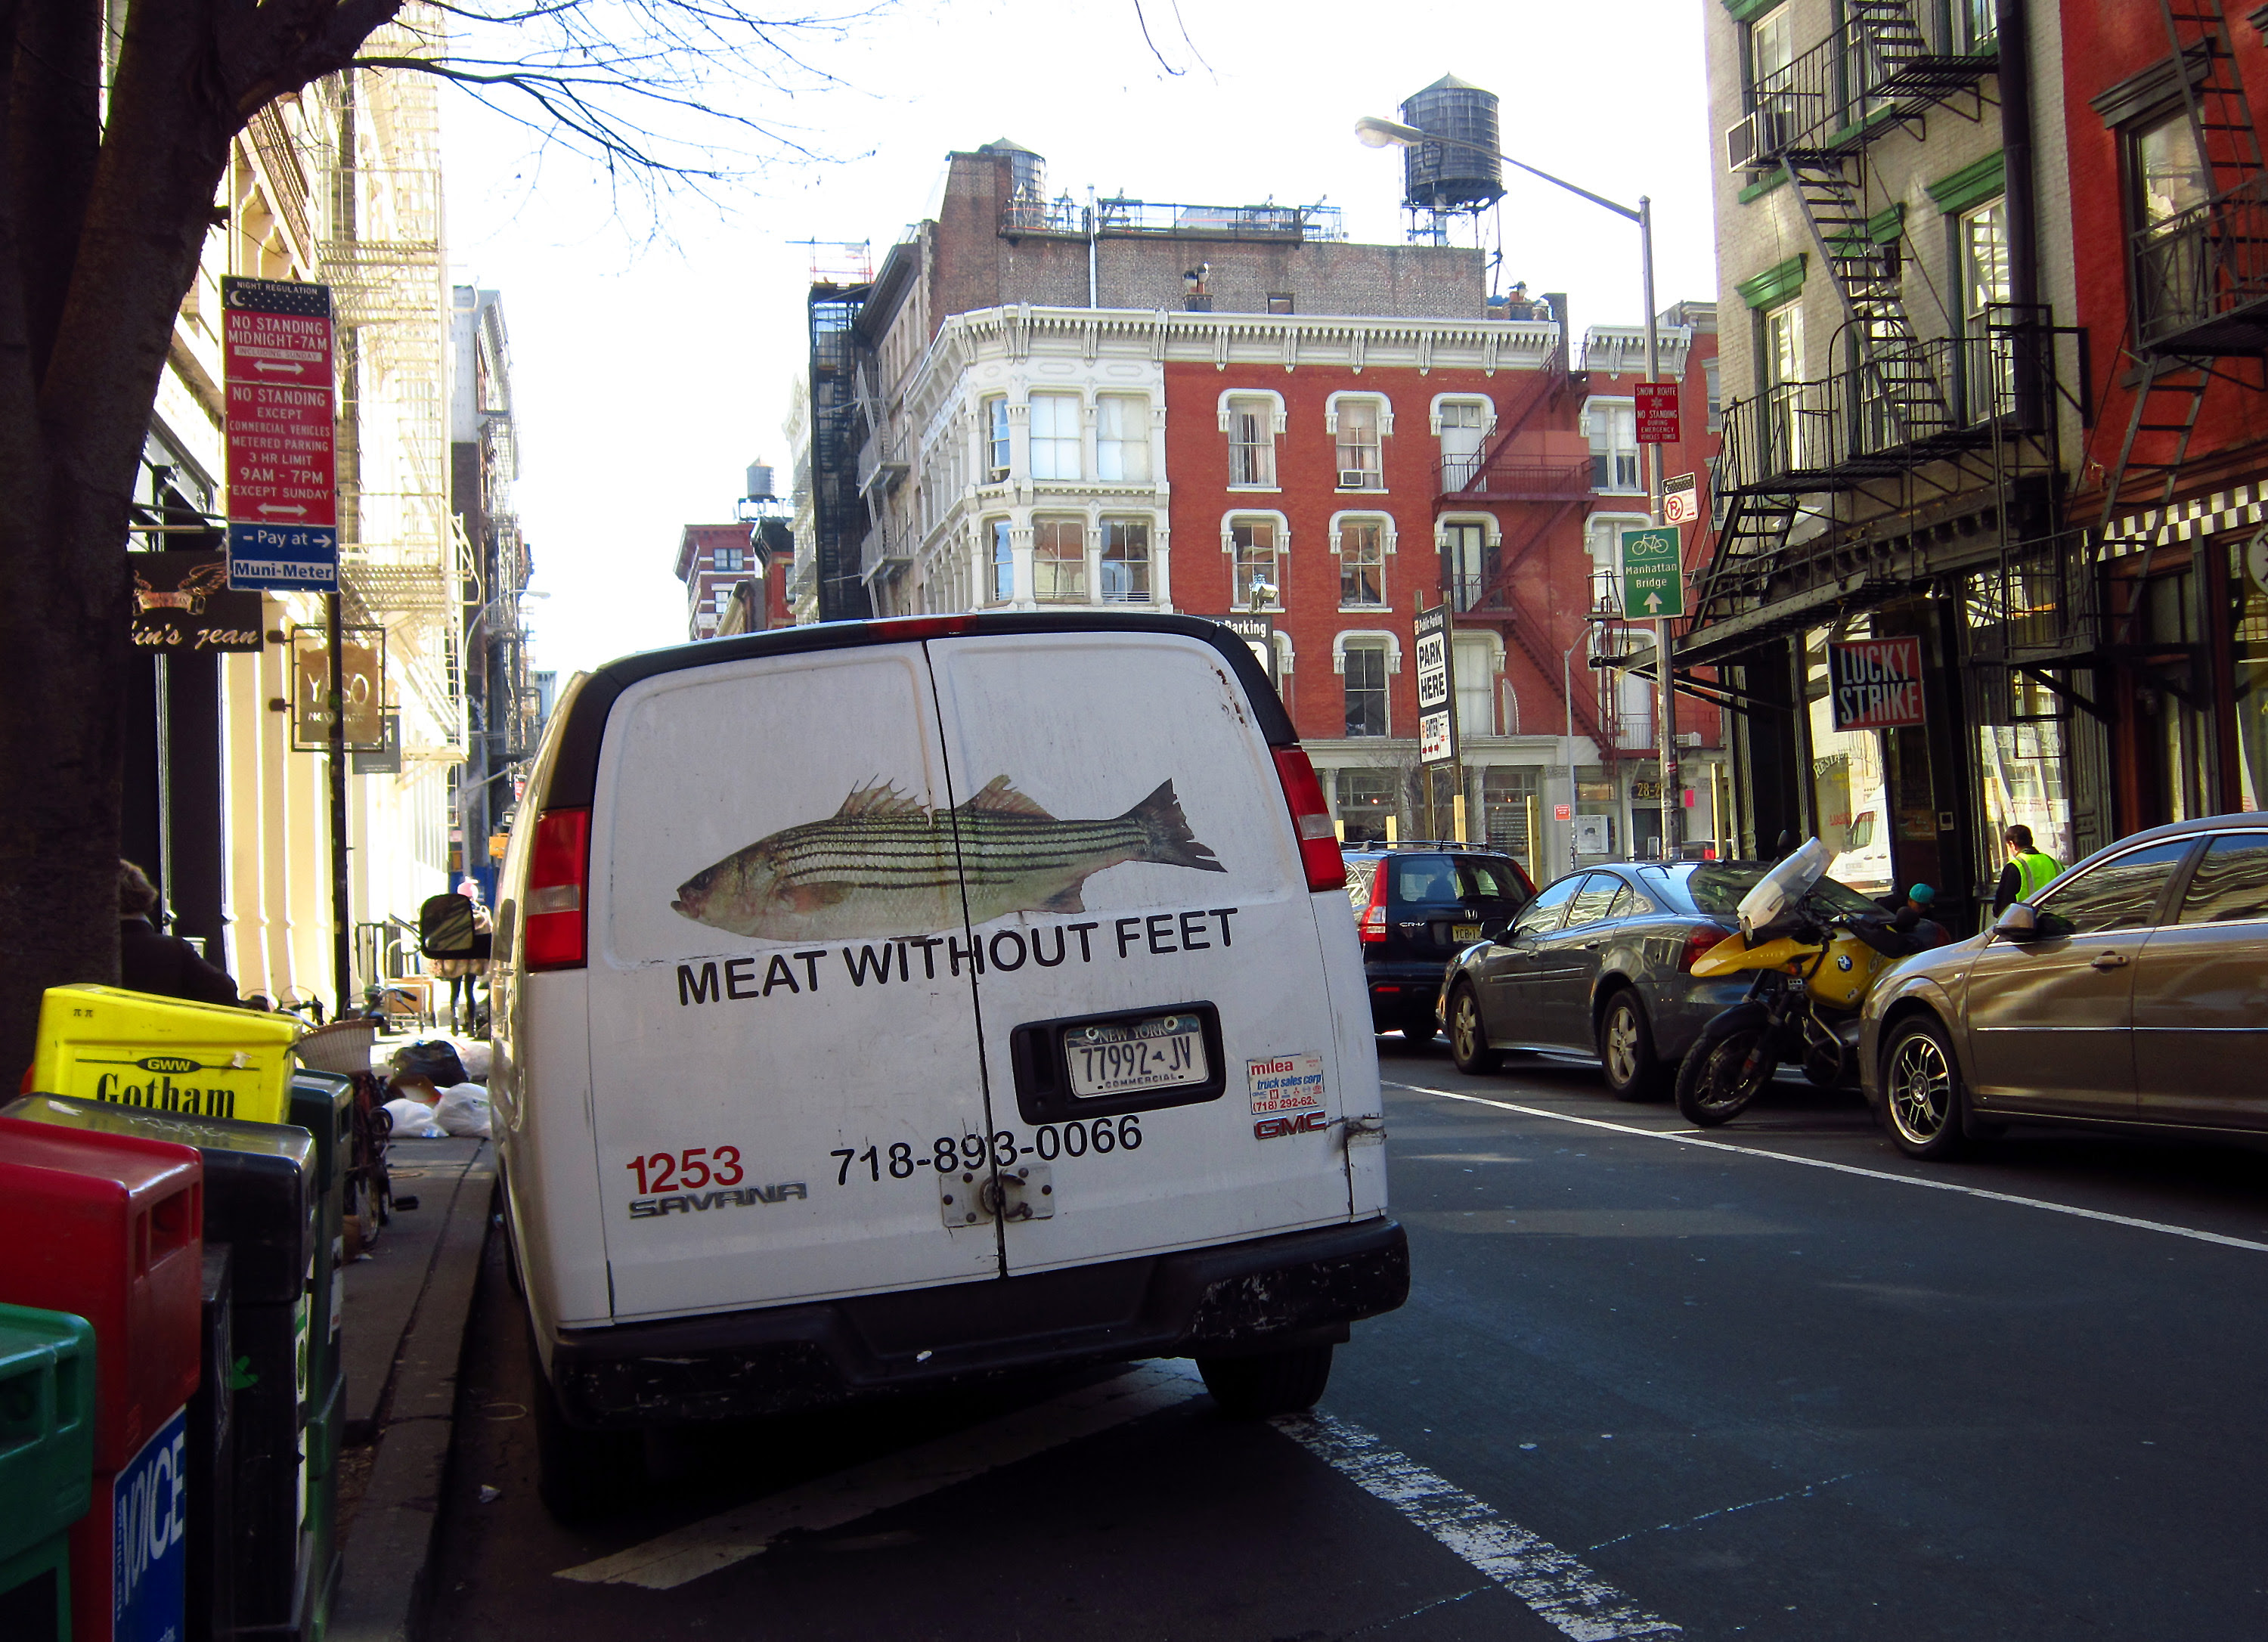 Meat without feet!